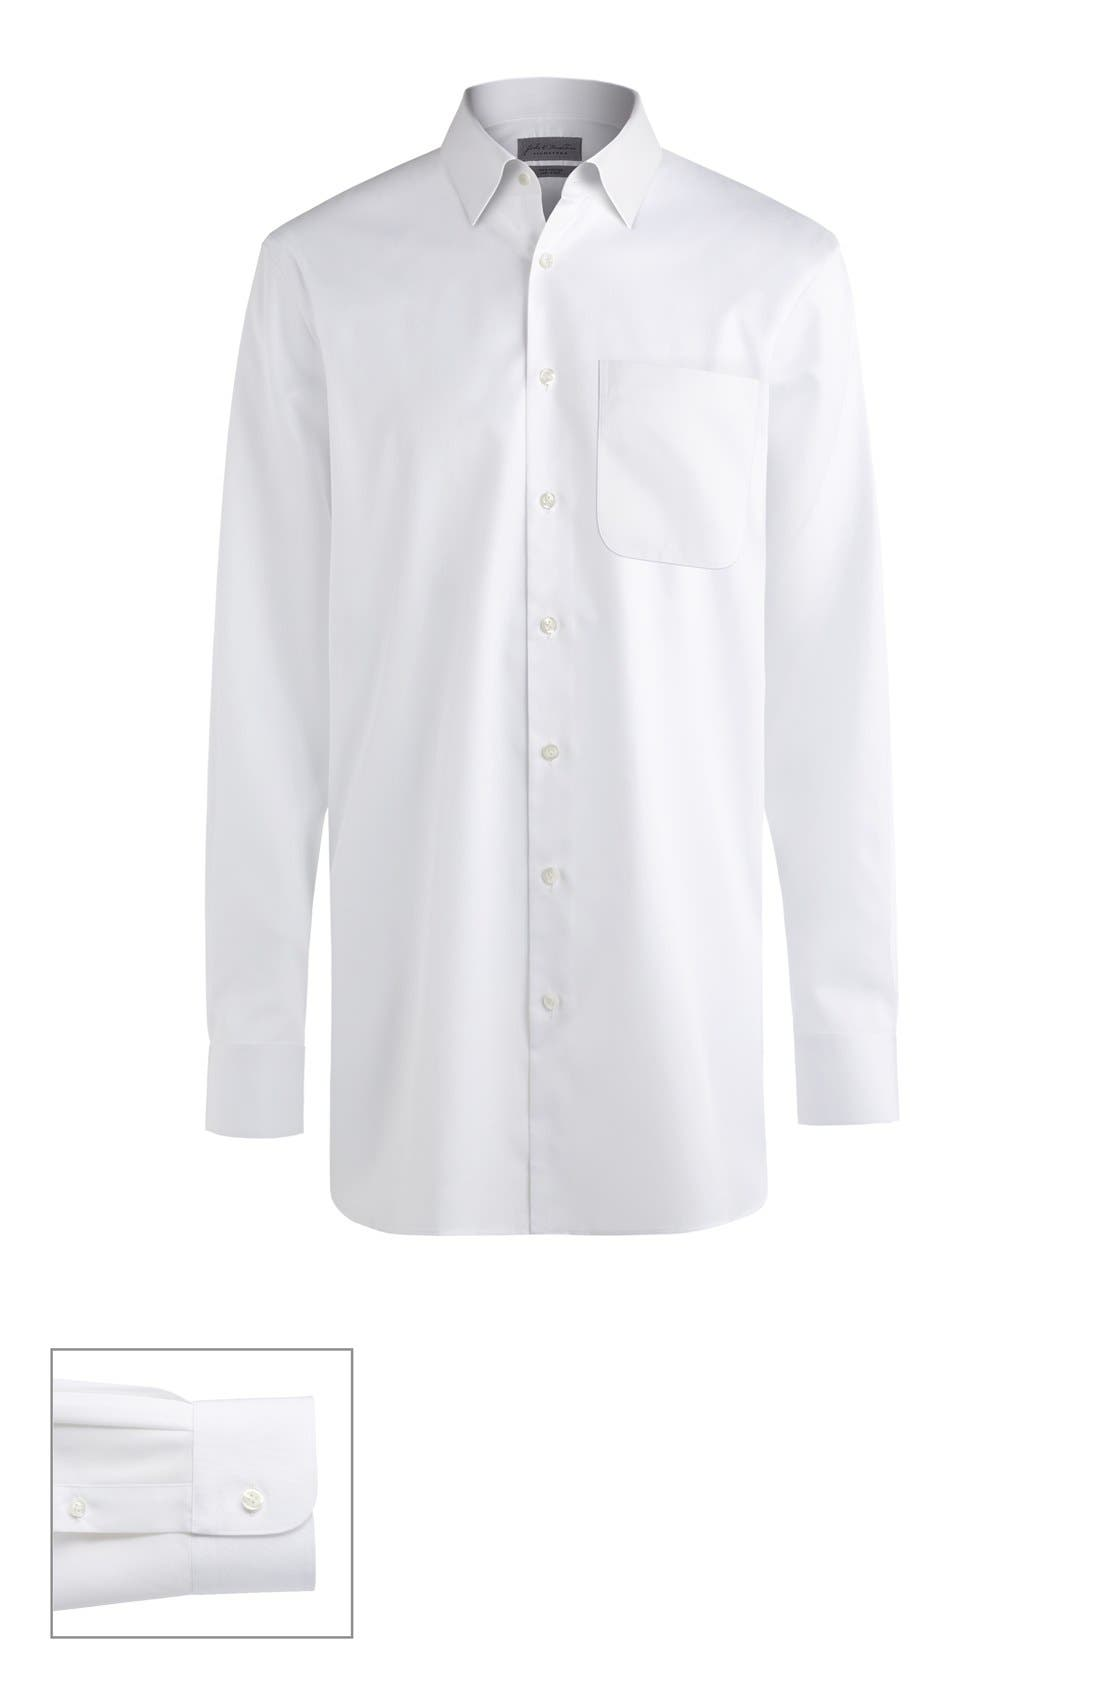 Made to Measure Extra Trim Fit Straight Collar Solid Dress Shirt,                         Main,                         color, White Fine Twill